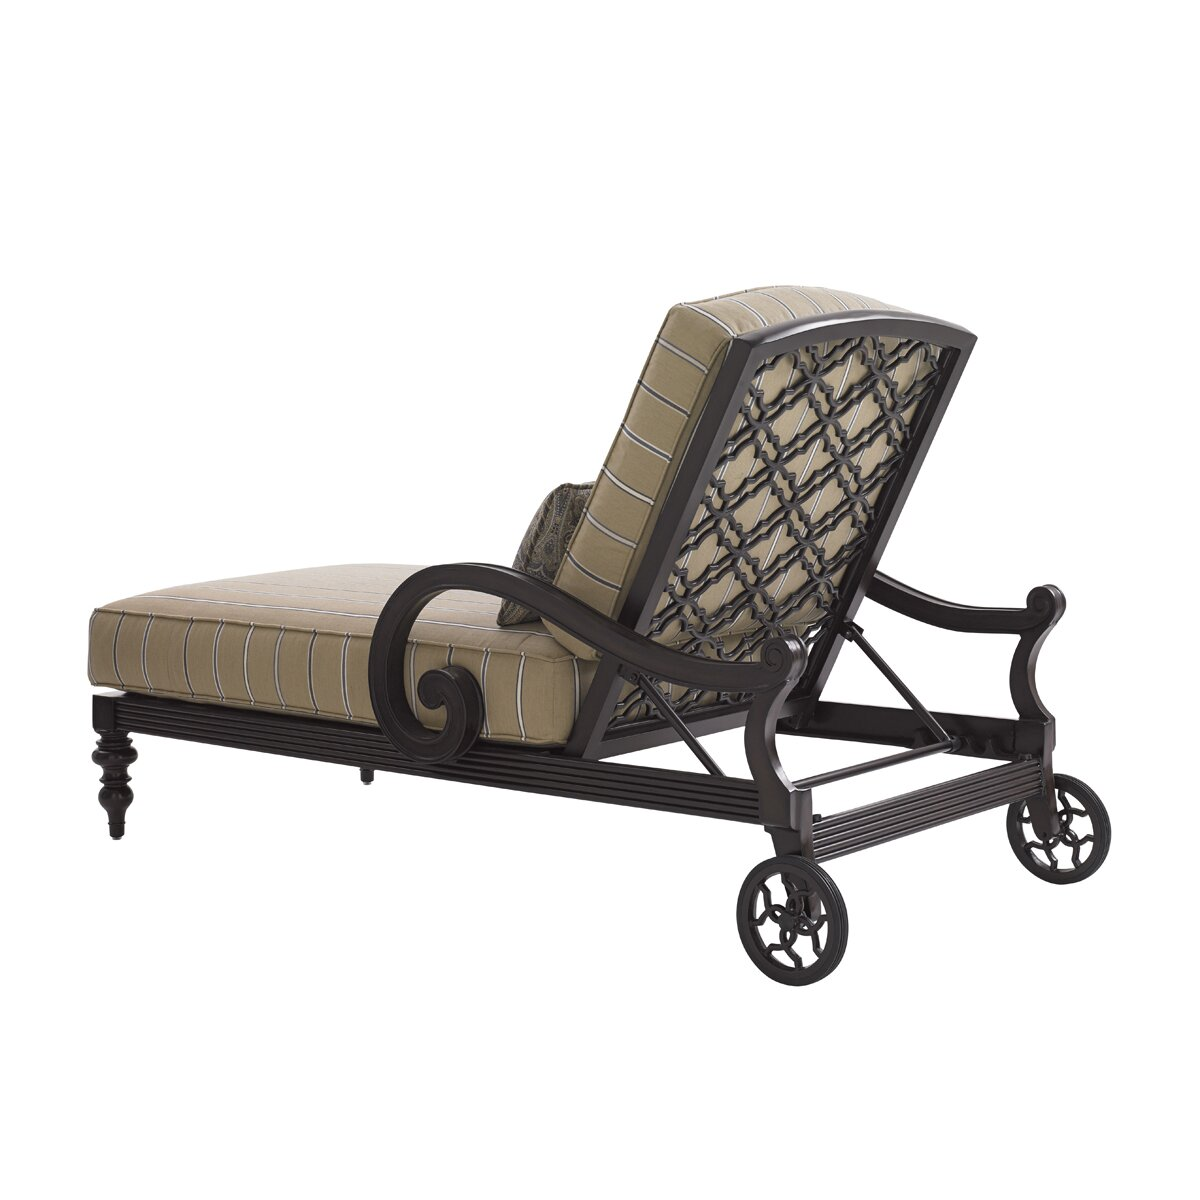 Tommy Bahama Outdoor Chaise Lounge